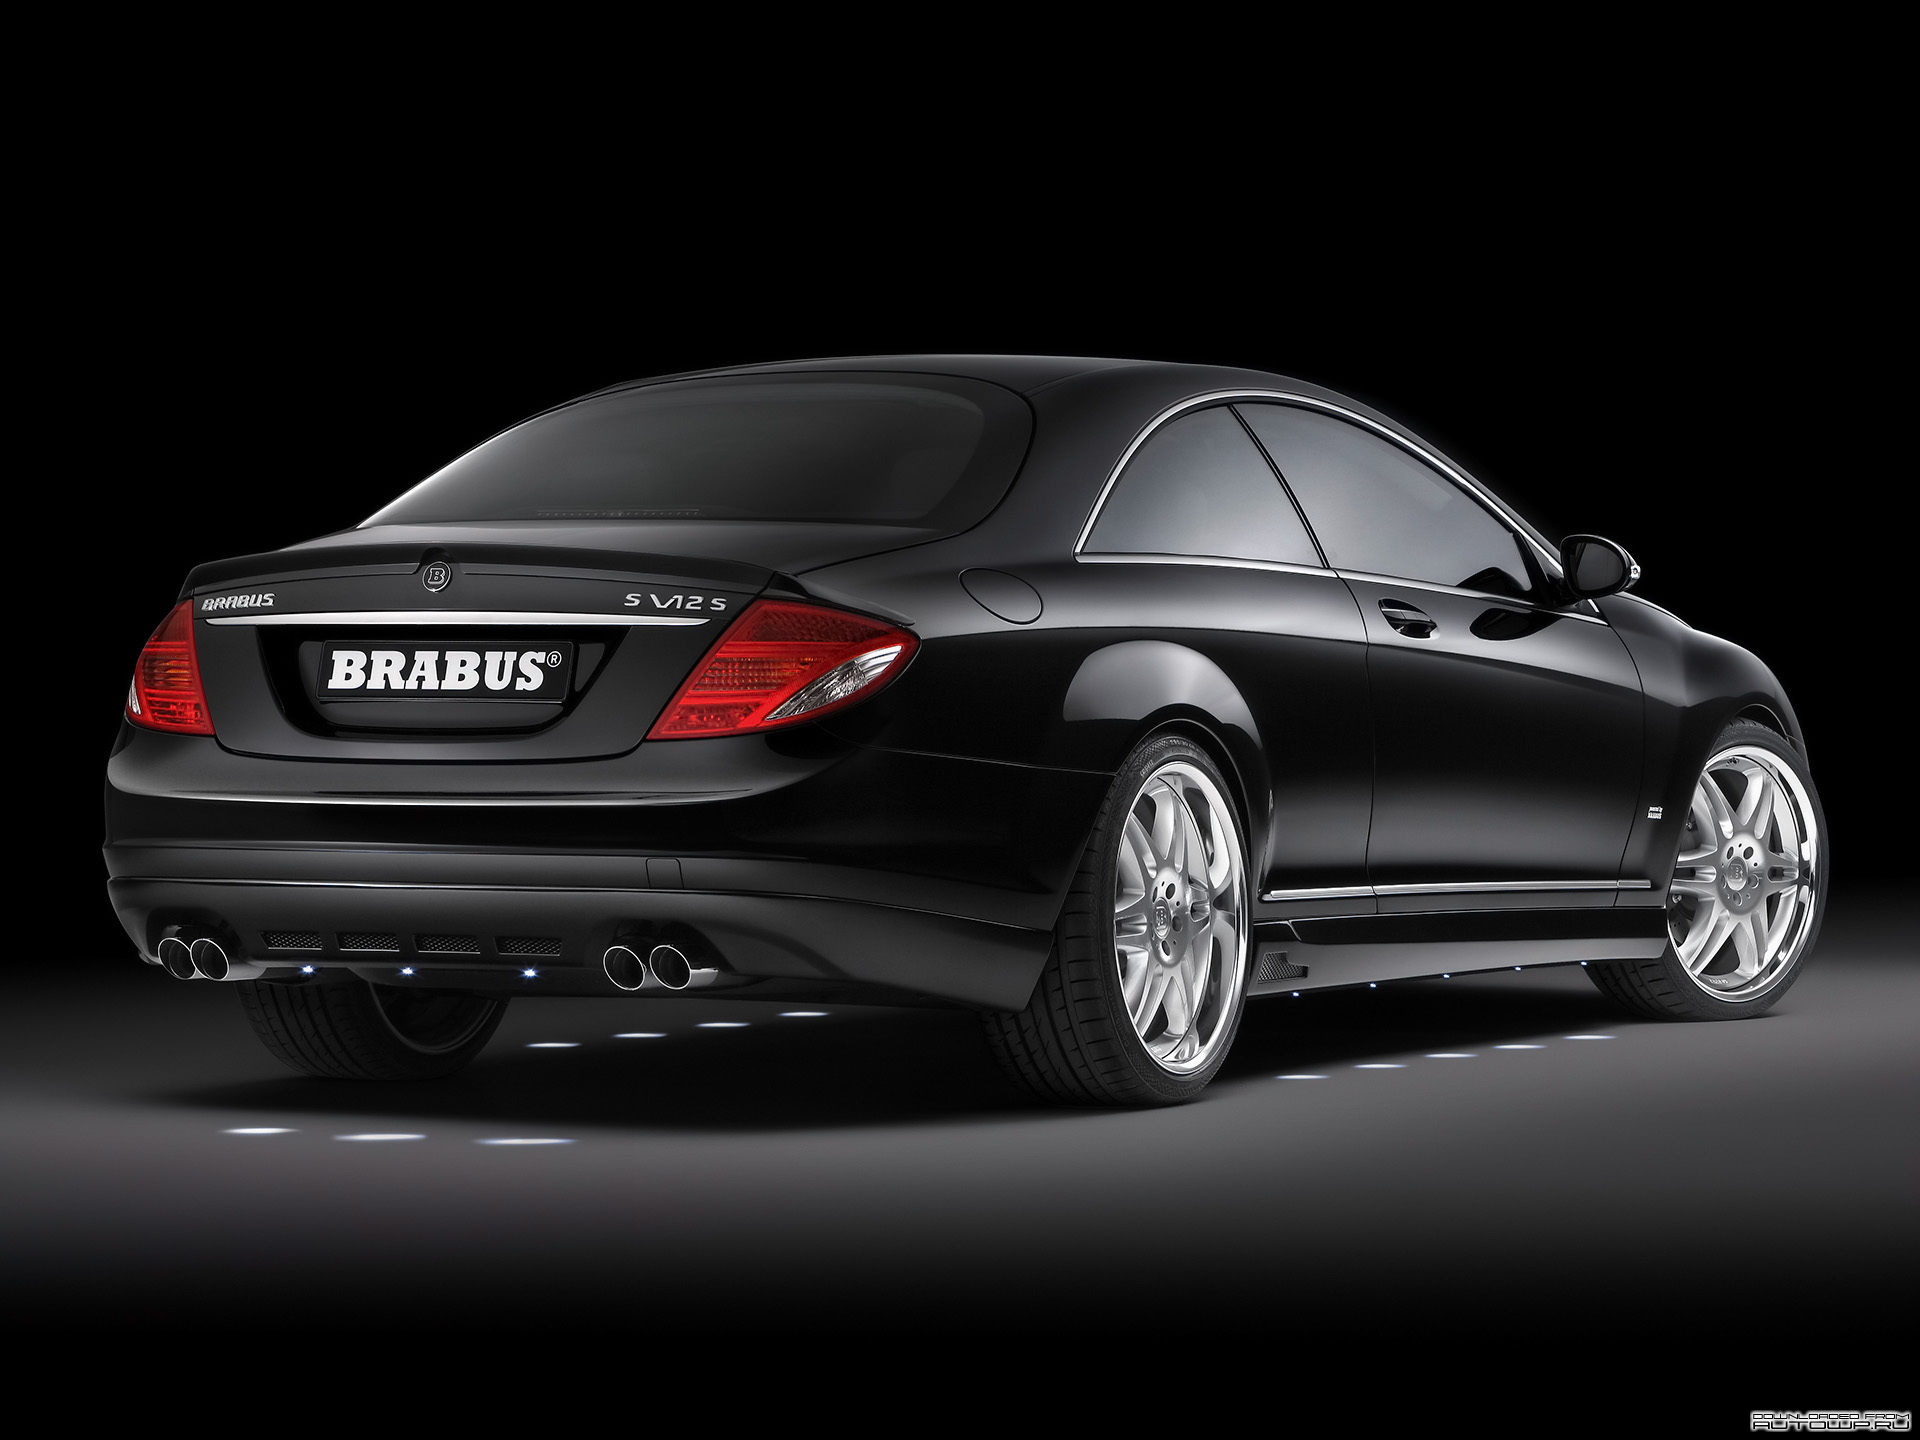 Brabus CL-Class (C216) photo 60276